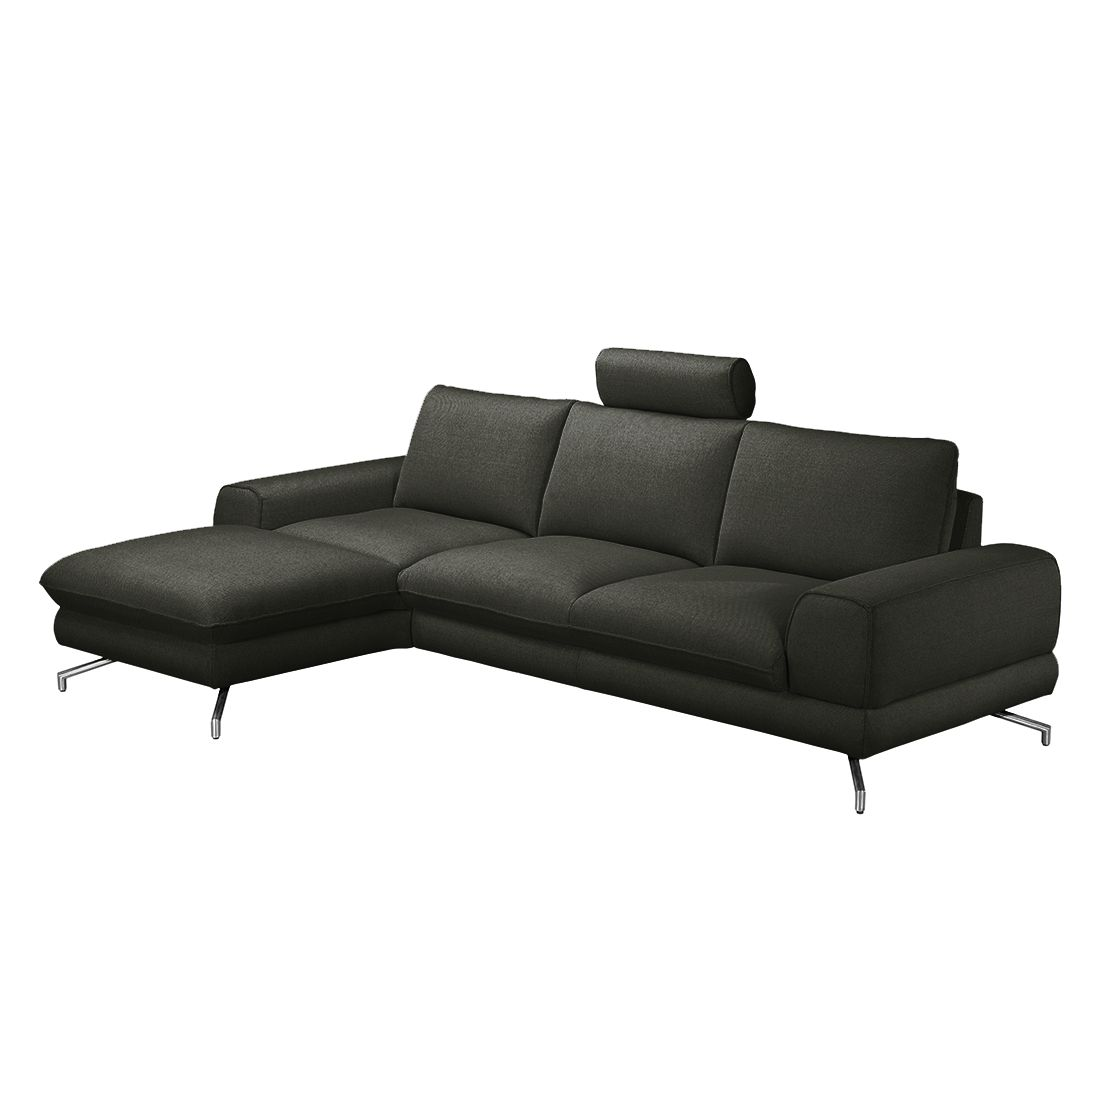 ecksofa lennard strukturstoff anthrazit longchair davorstehend links ohne kopfst tze. Black Bedroom Furniture Sets. Home Design Ideas